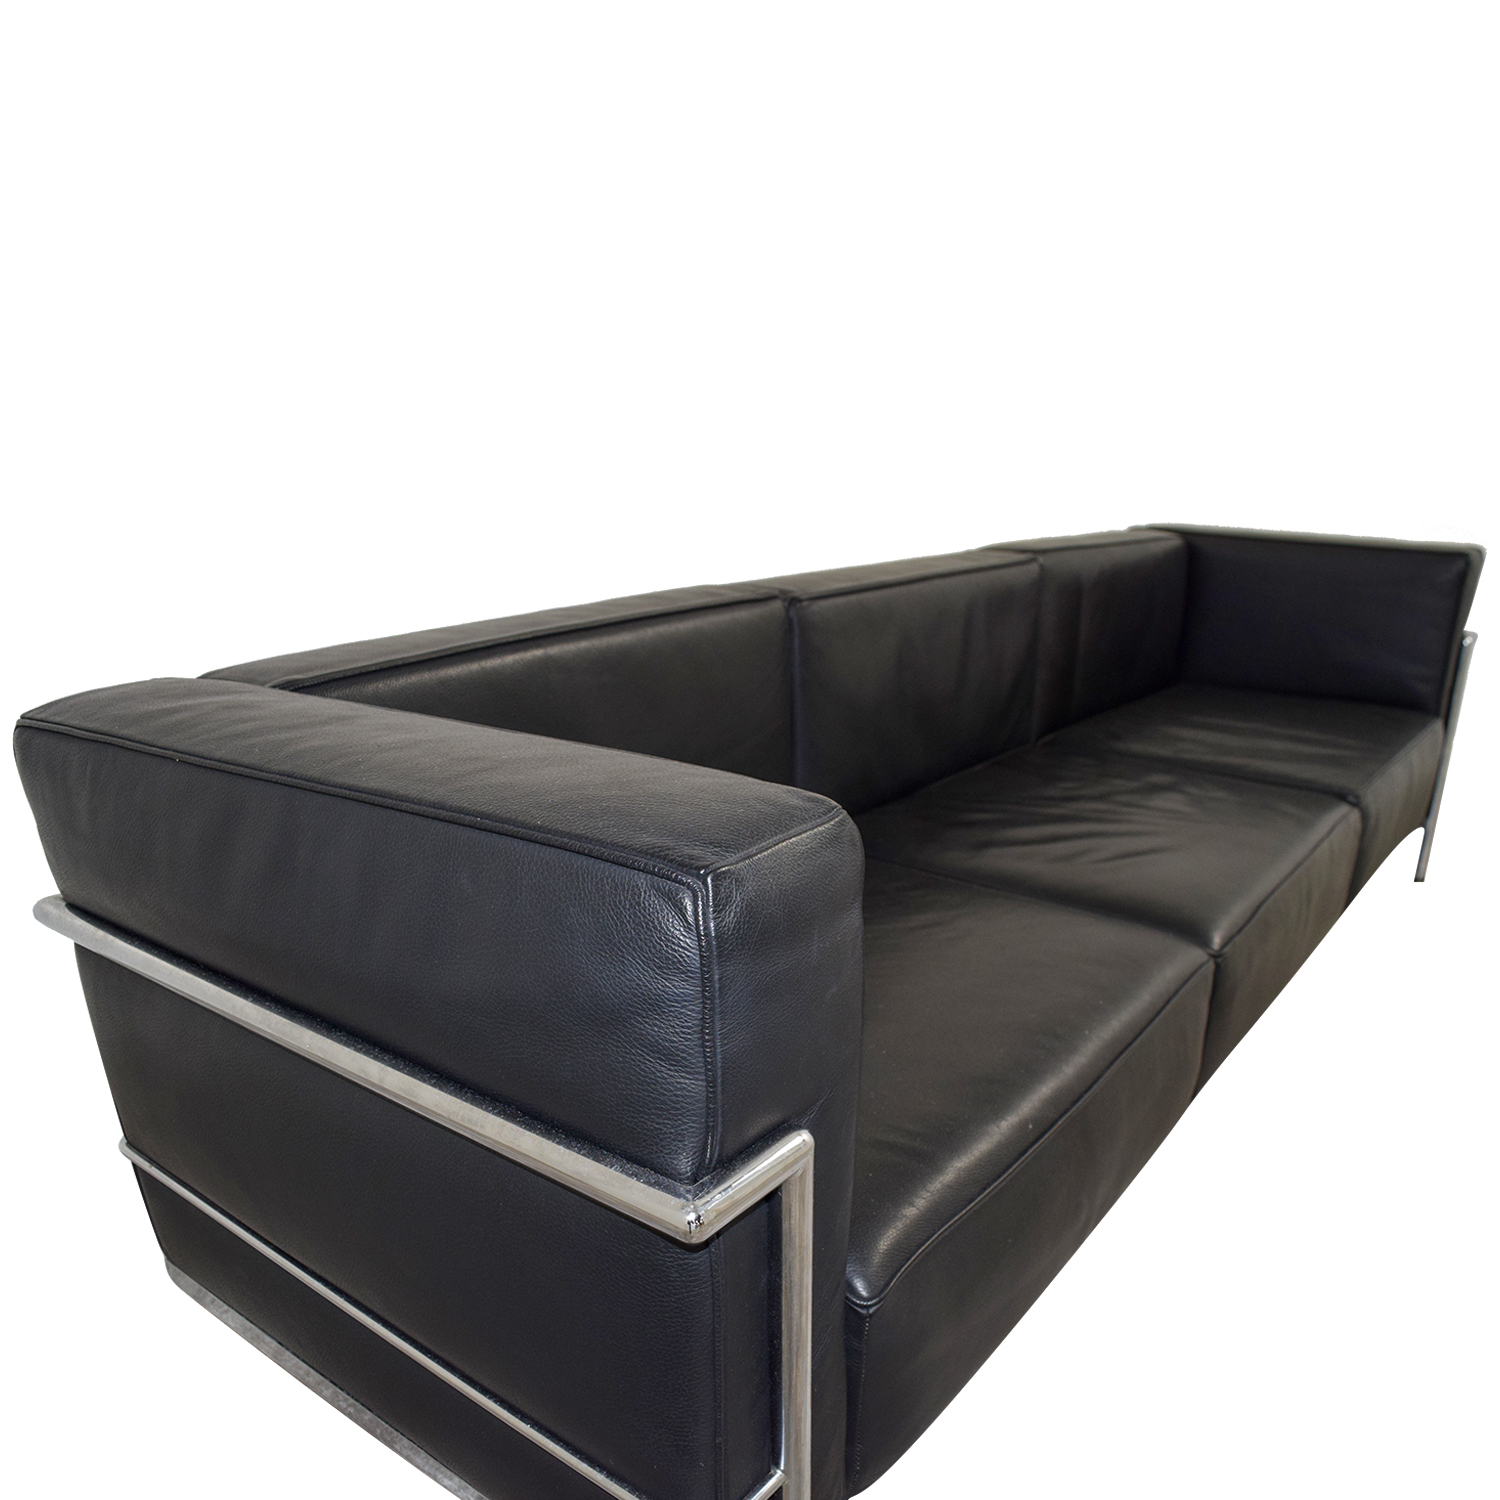 le corbusier sofa replica protector cover uk 60 off l3 black couch sofas